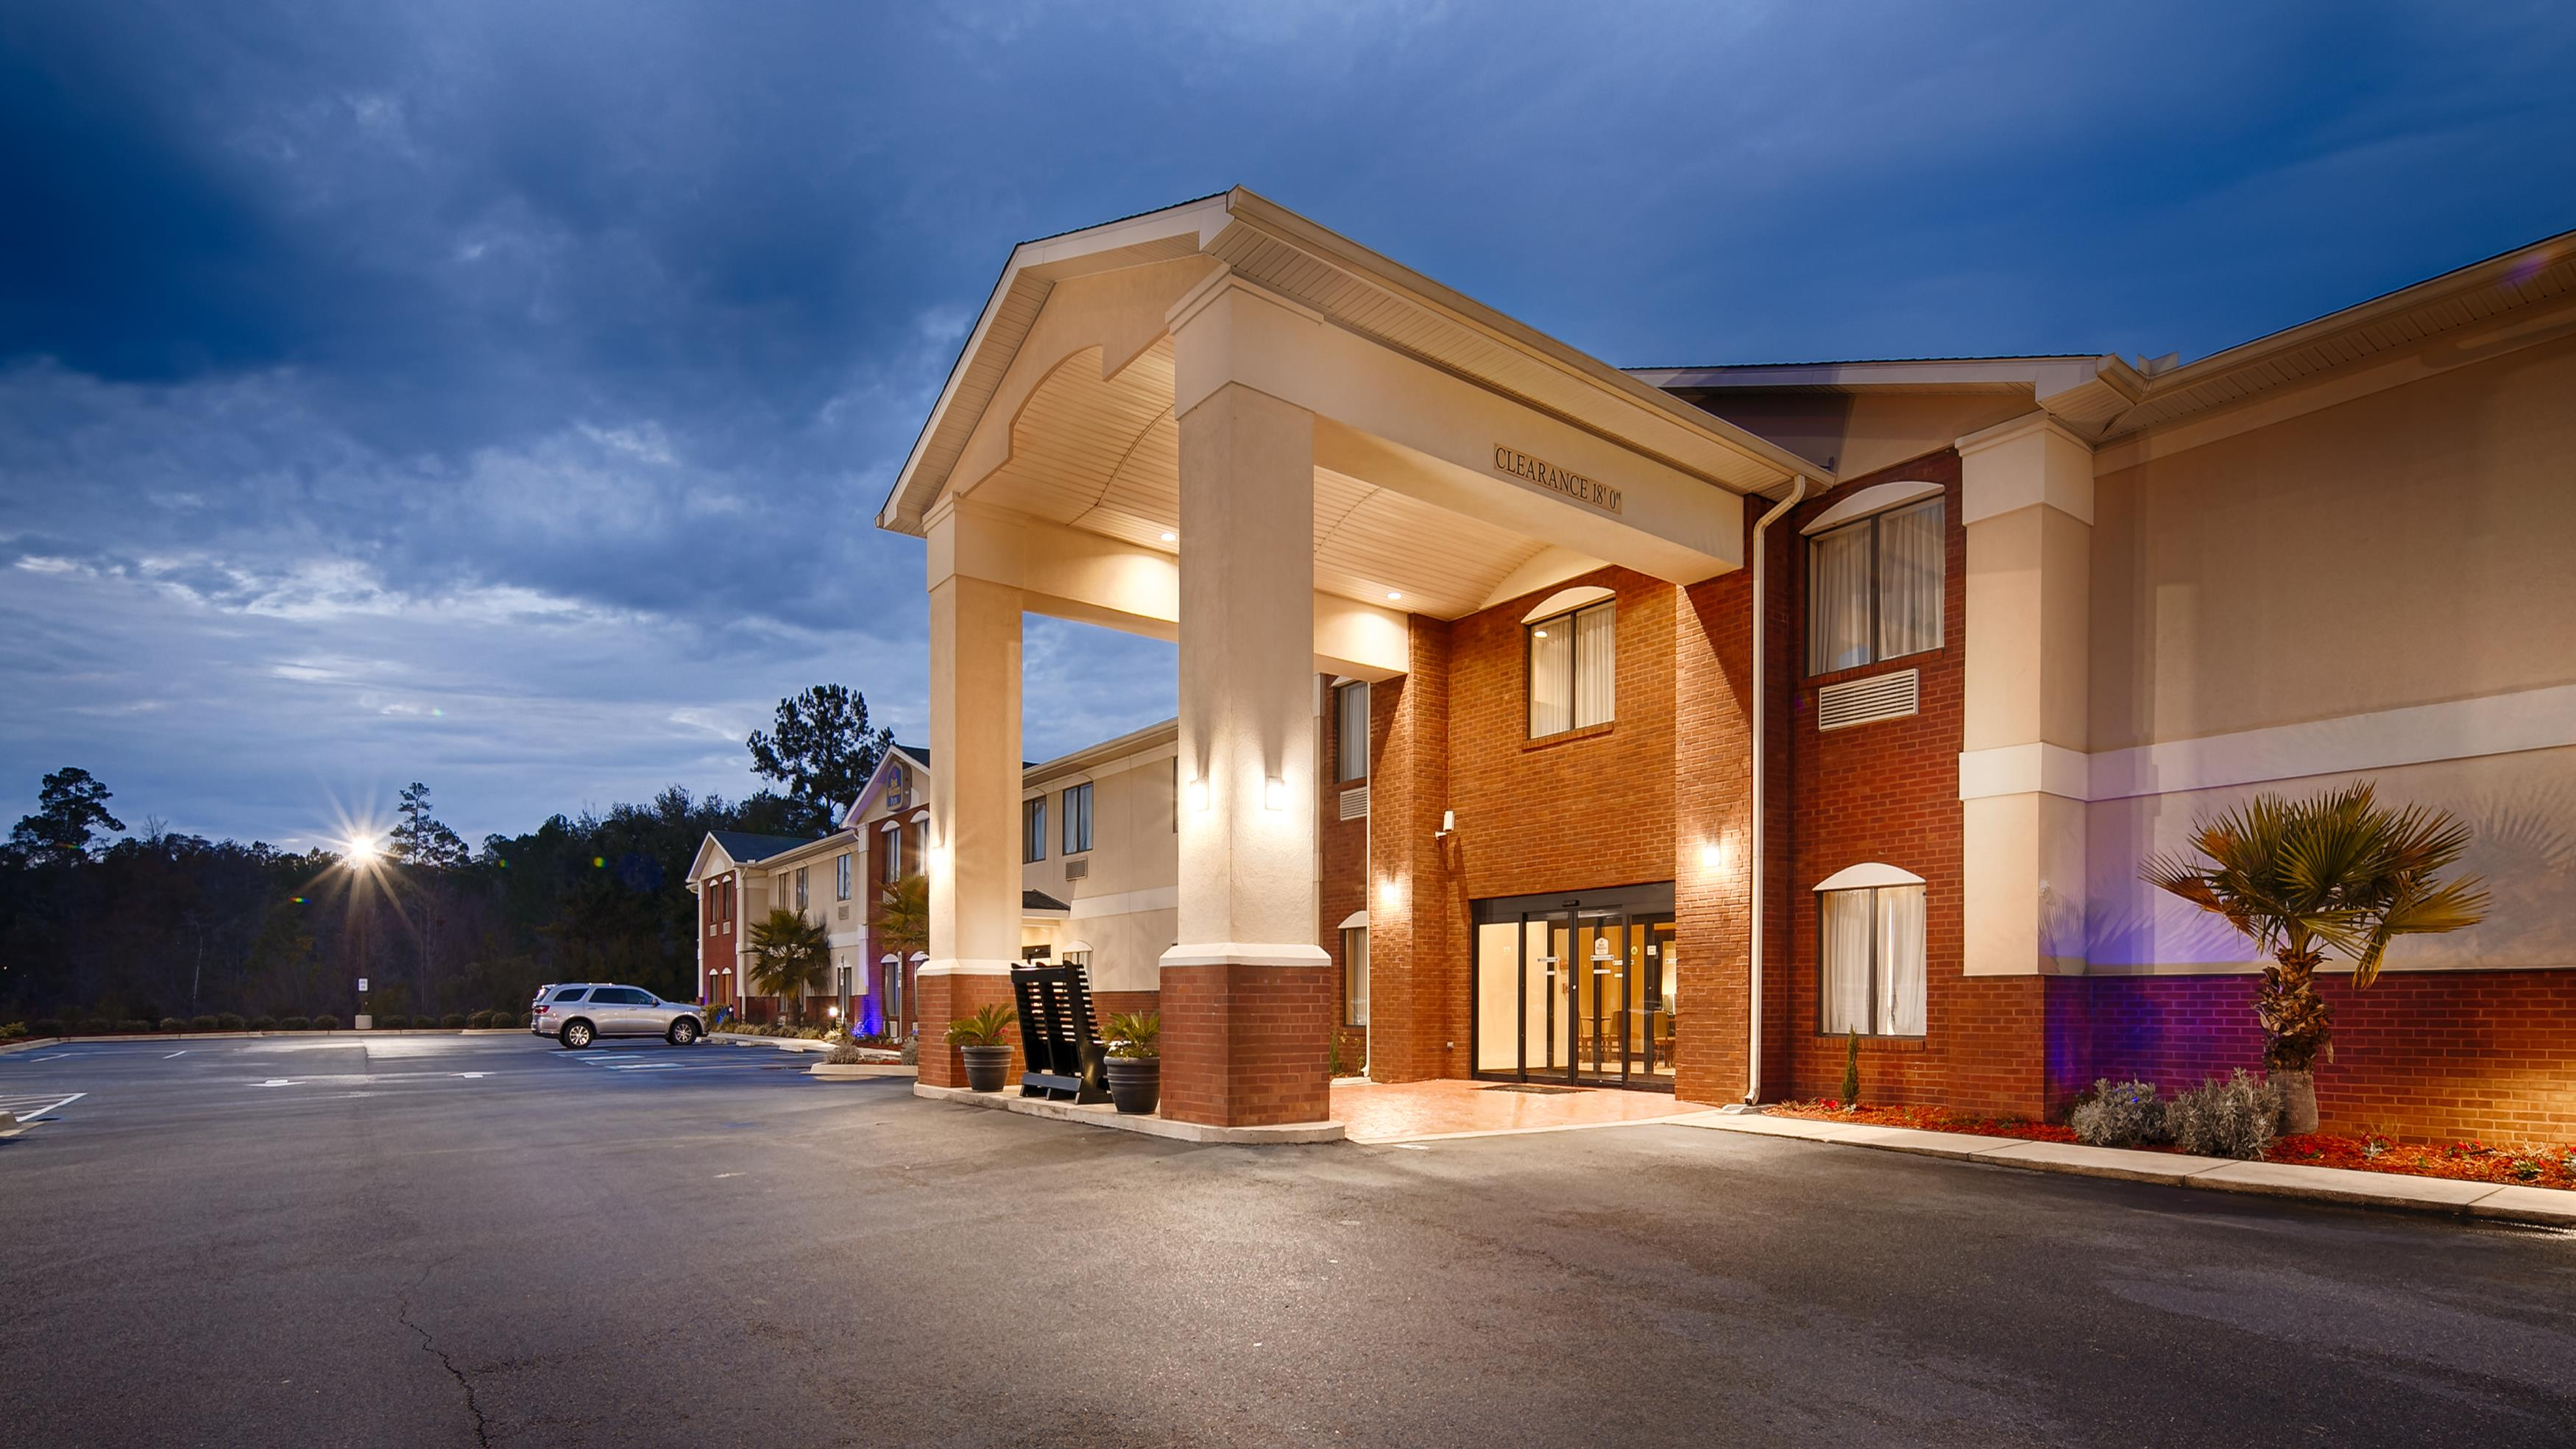 Country Inn & Suites by Radisson, Midway, FL image 4